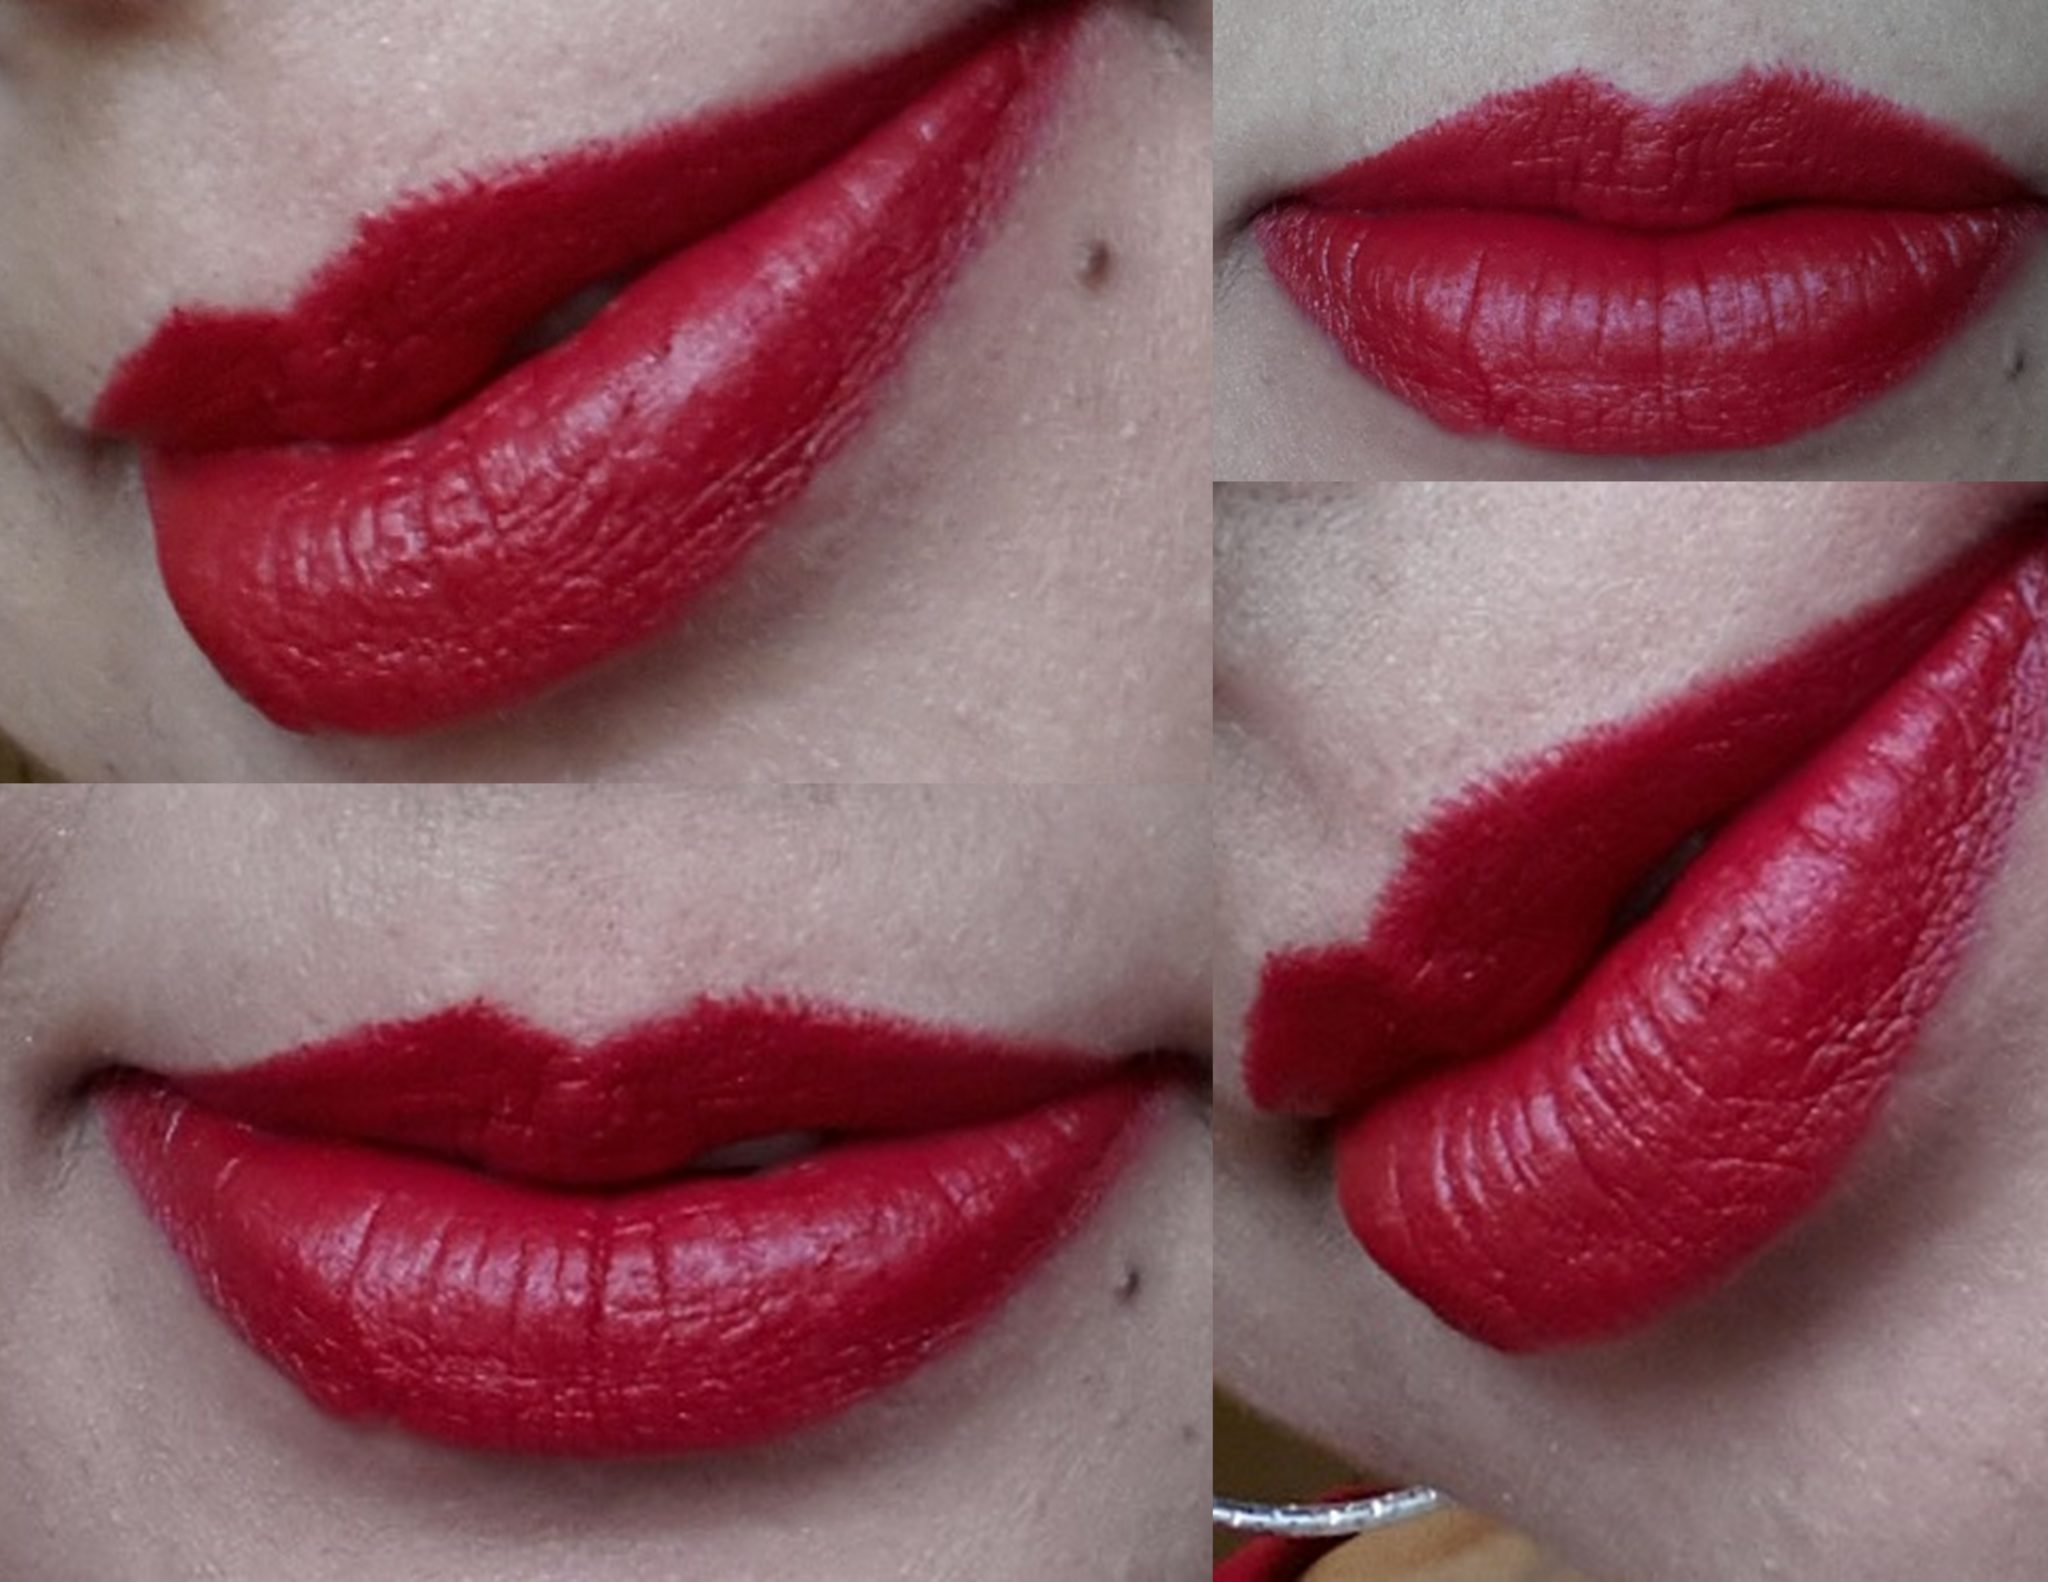 Mac Russian Red Lipstick Swatches On Lips